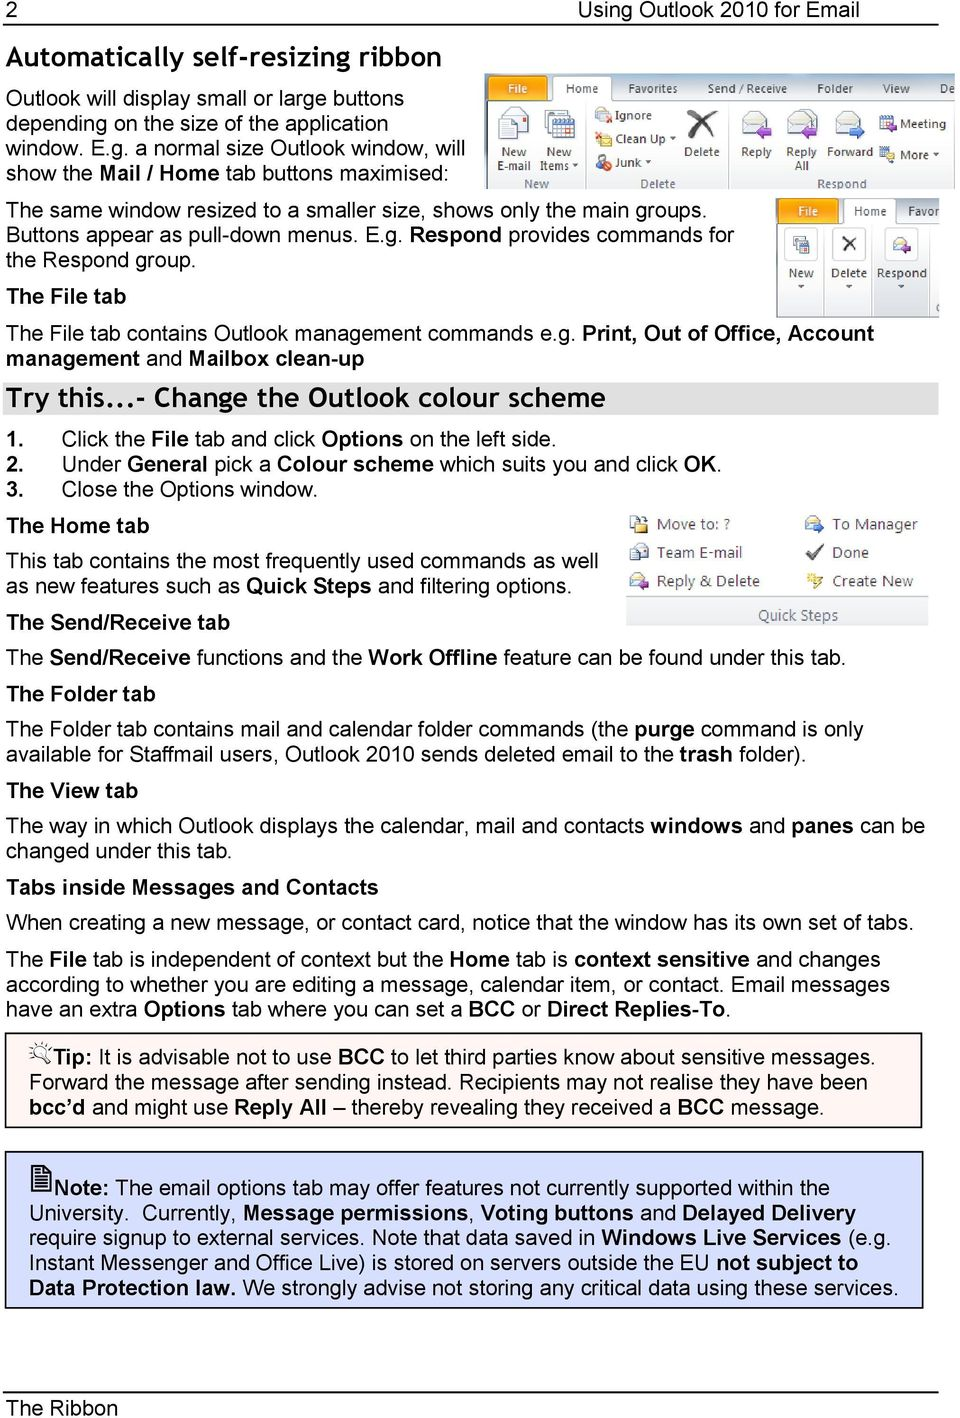 ..- Change the Outlook colour scheme 1. Click the File tab and click Options on the left side. 2. Under General pick a Colour scheme which suits you and click OK. 3. Close the Options window.